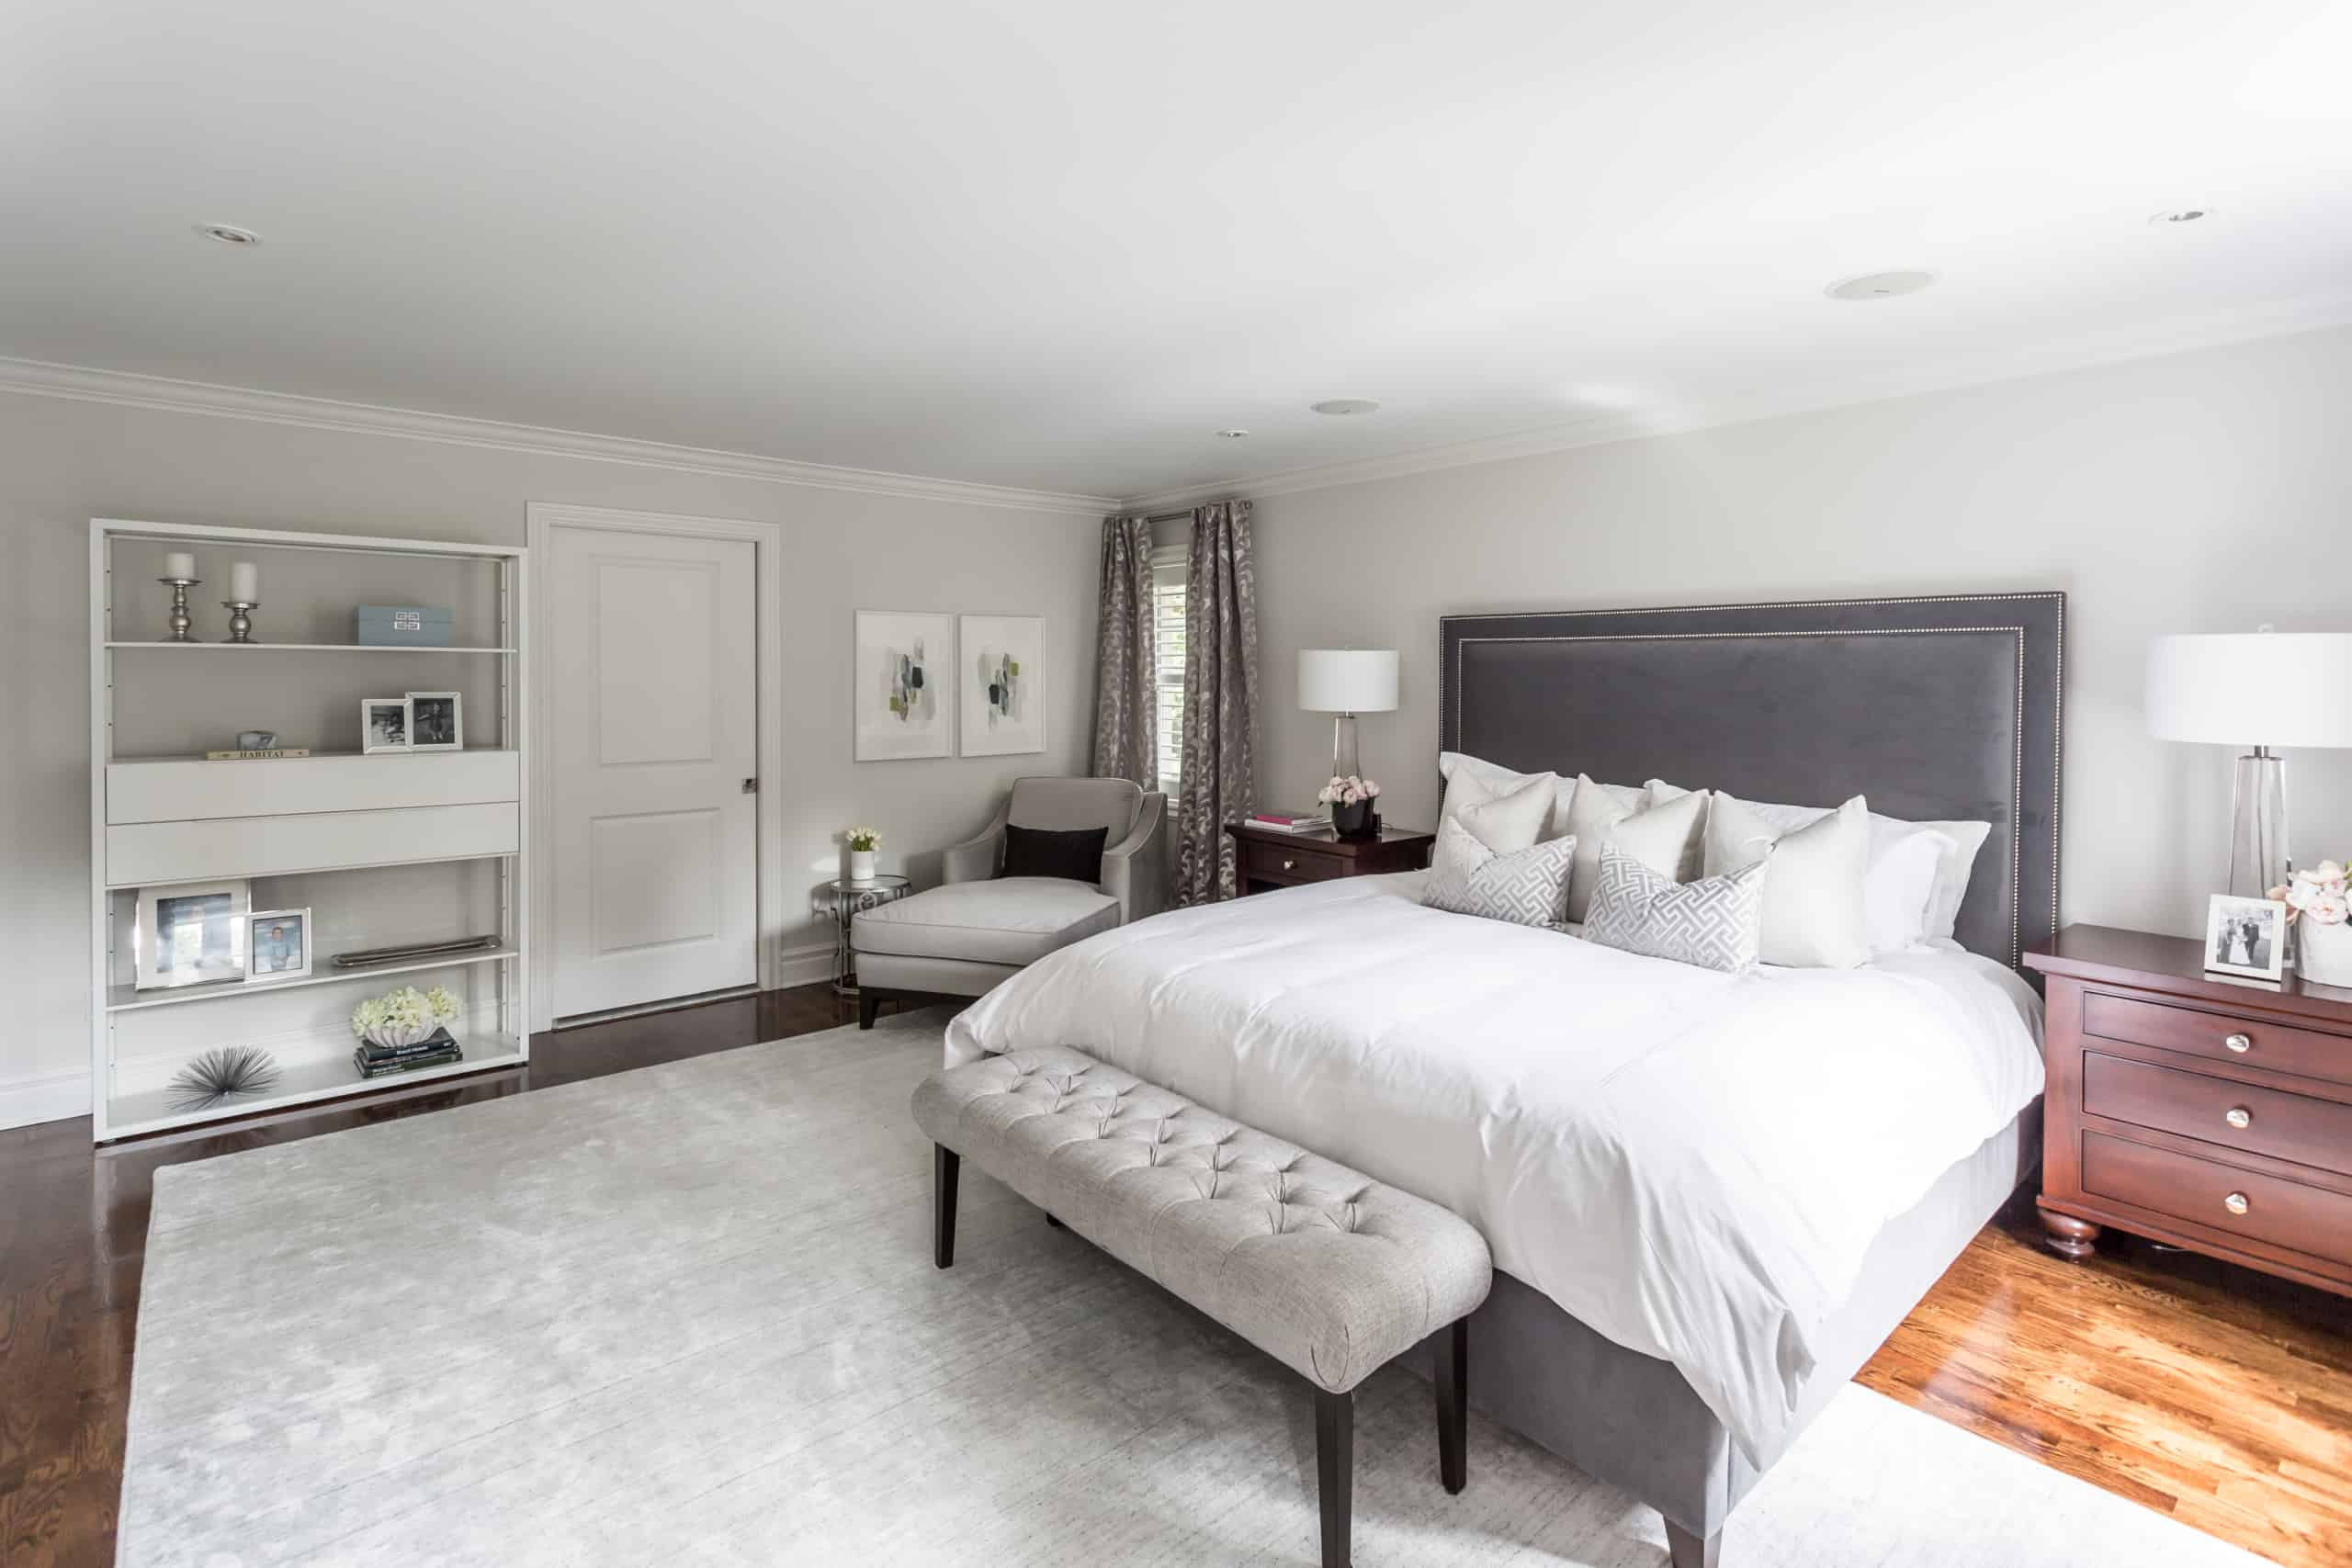 Large, modern master bedroom containing a large gray carpet